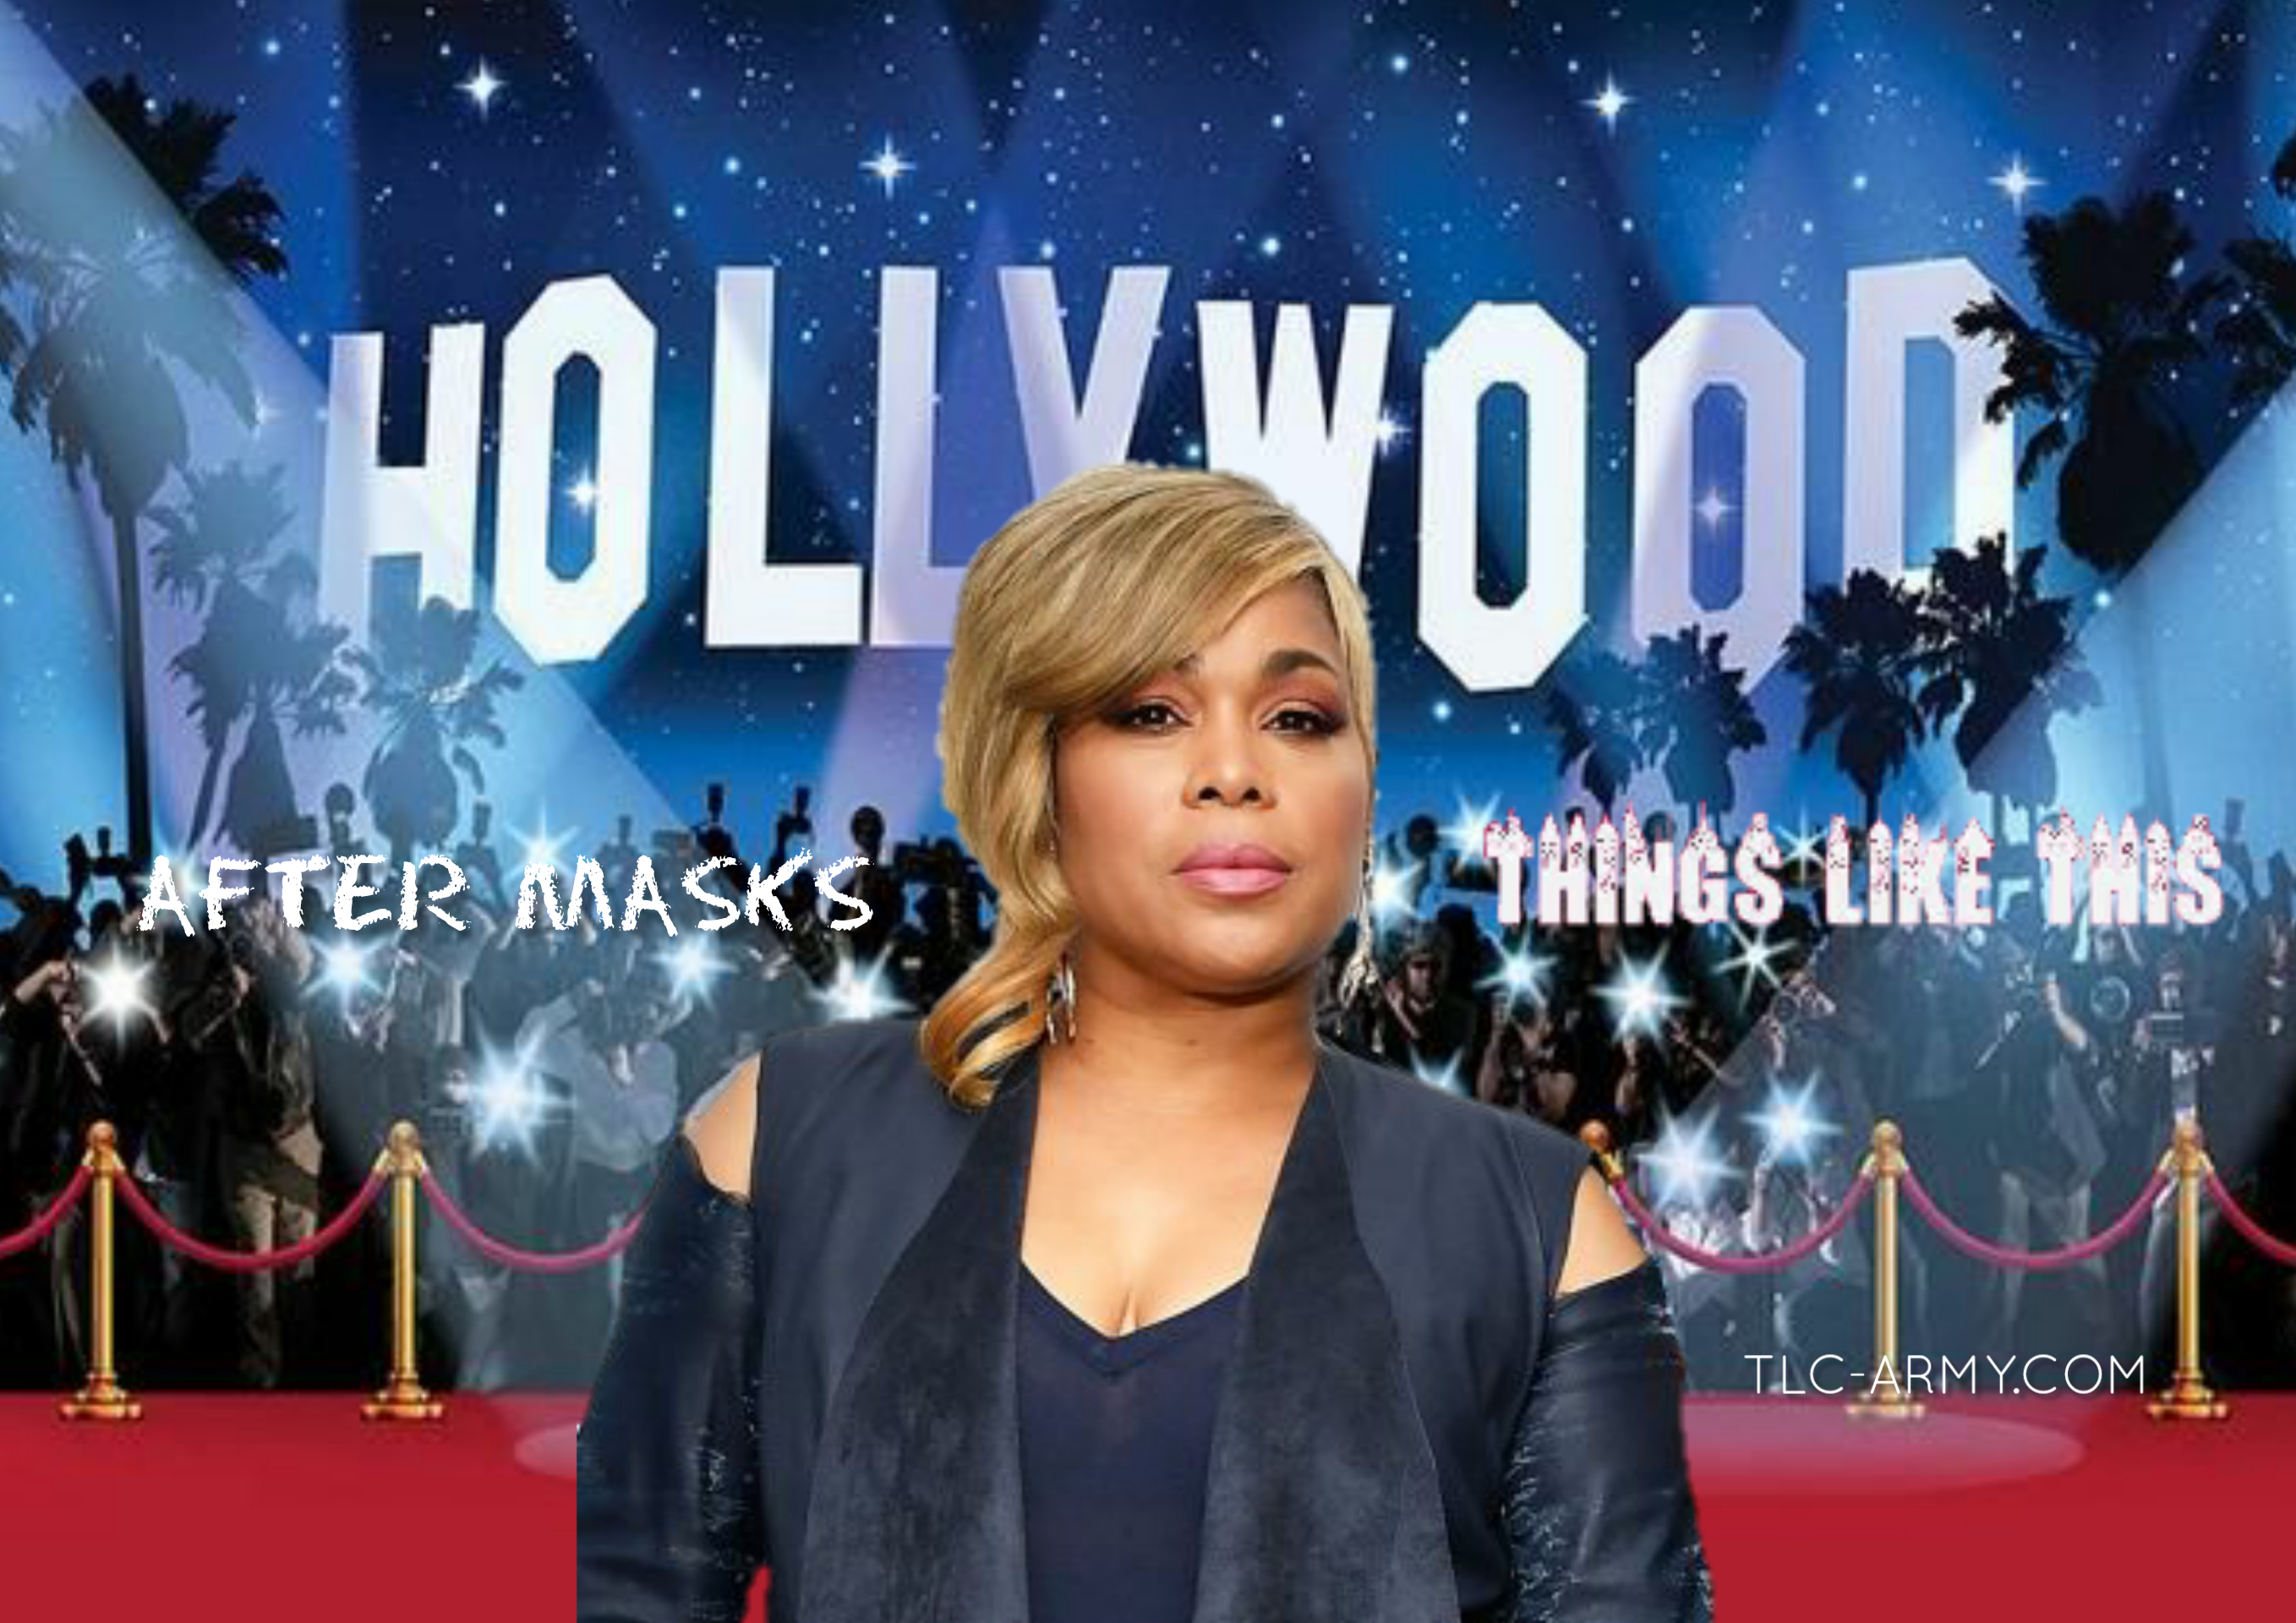 T-Boz Set To Return To Acting In Upcoming Movies 'After Masks' and 'Things Like This'